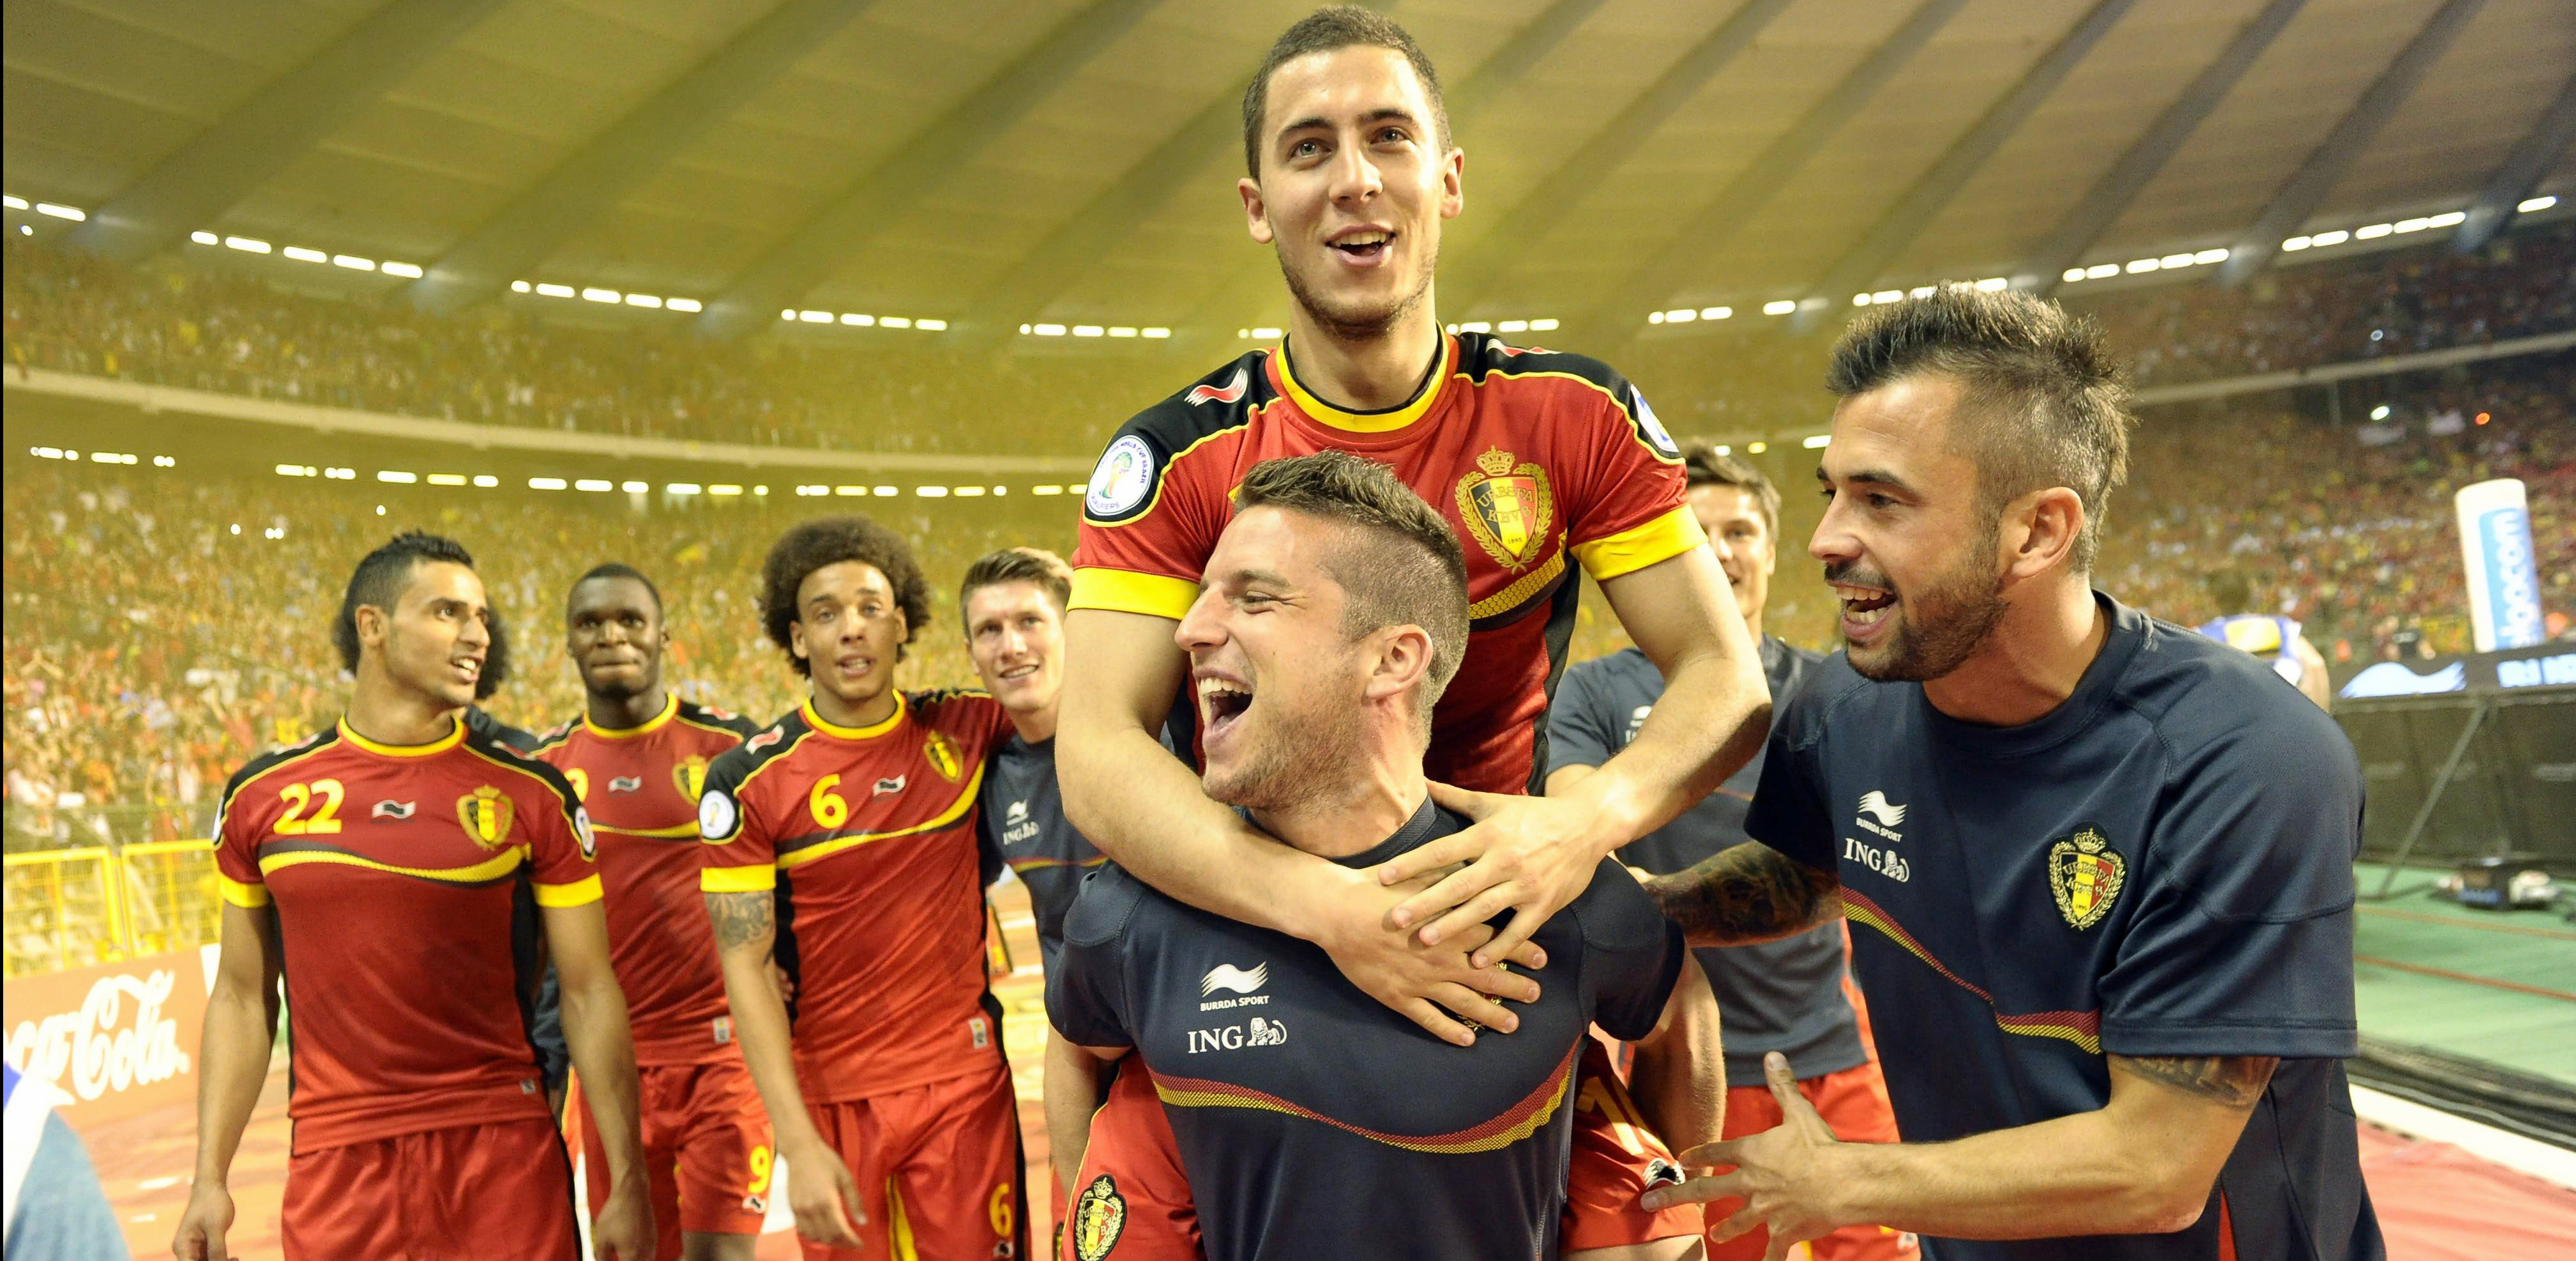 Belgian-Football-Team-large-photo.jpg